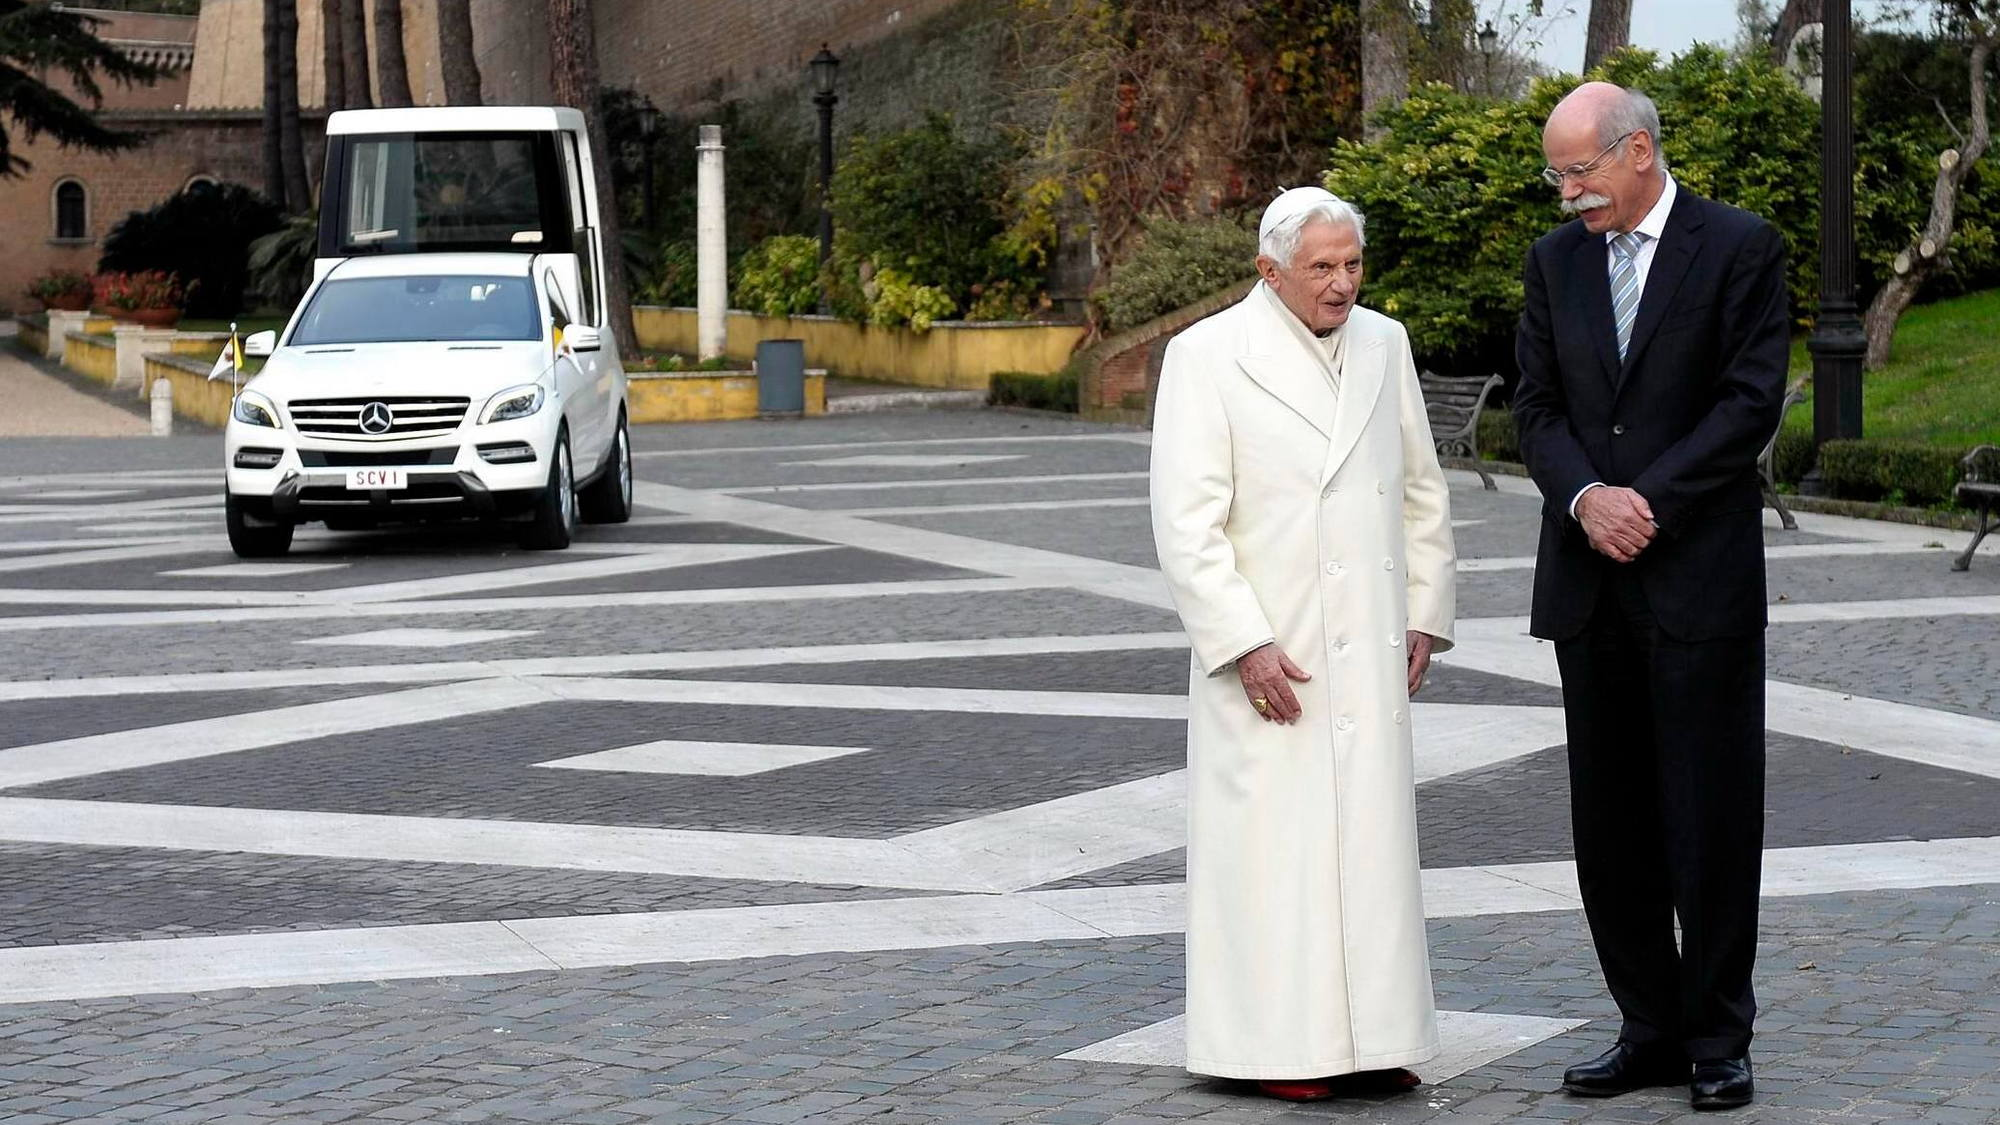 Pope Benedict XVI takes delivery of his new M Class Popemobile at the Vatican, December 2012